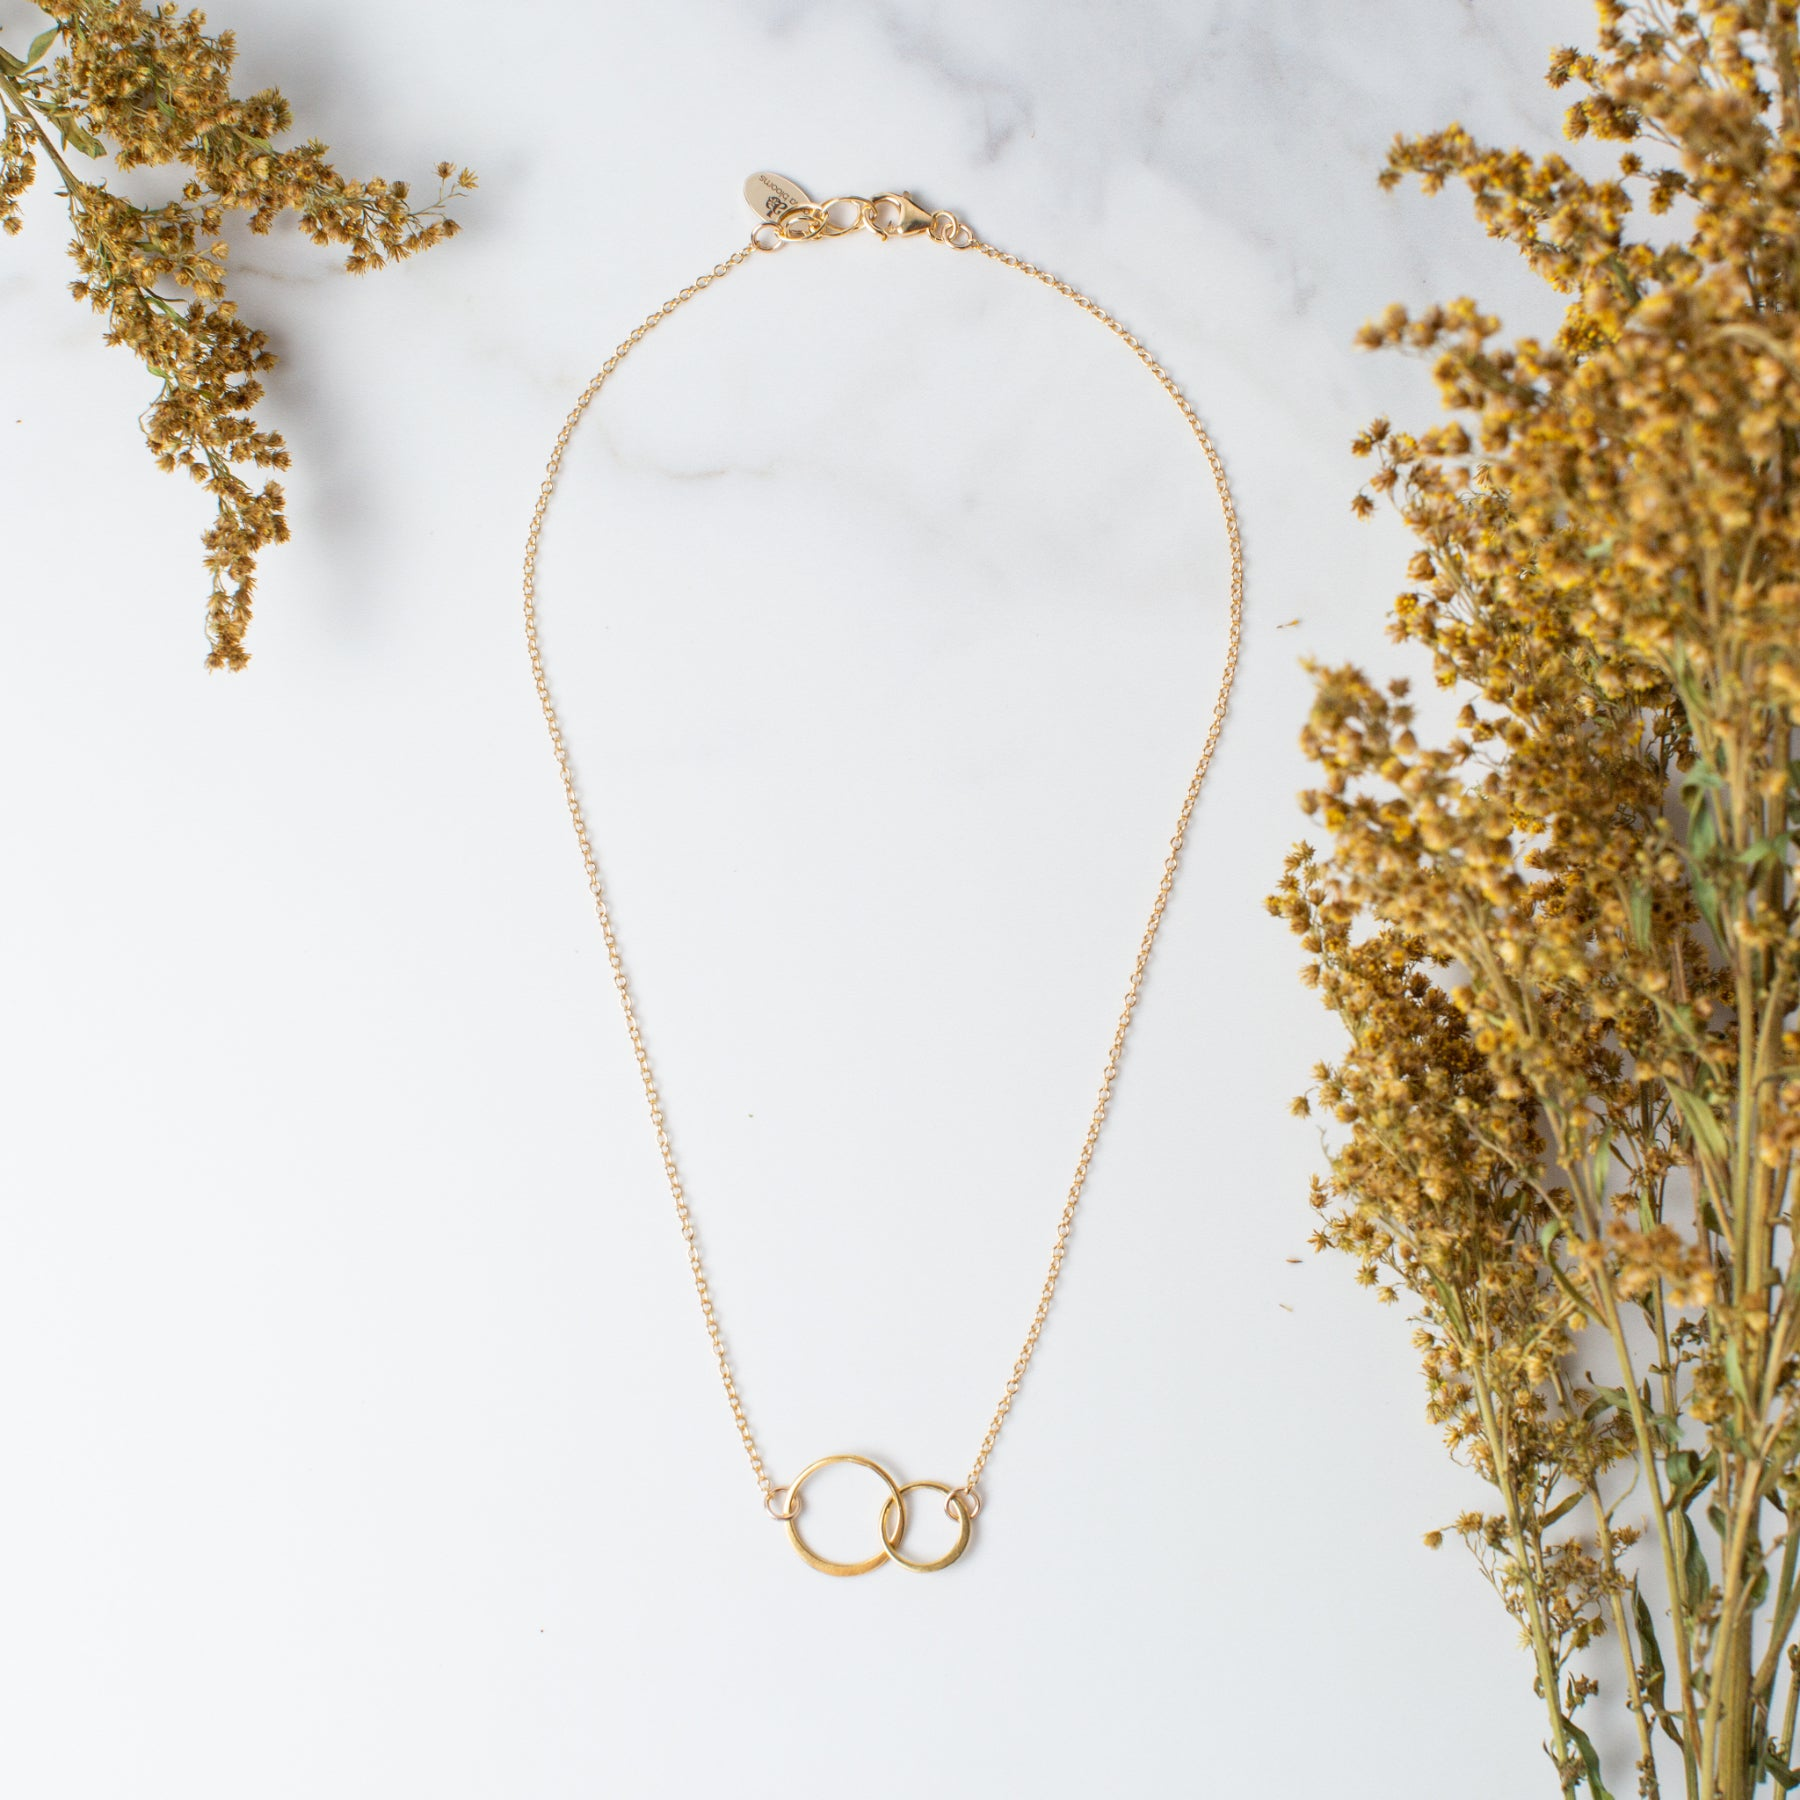 Gold Linked Circles Necklace 'We Are Connected' Flat Lay with Yellow Flowers Photo by Asha Blooms